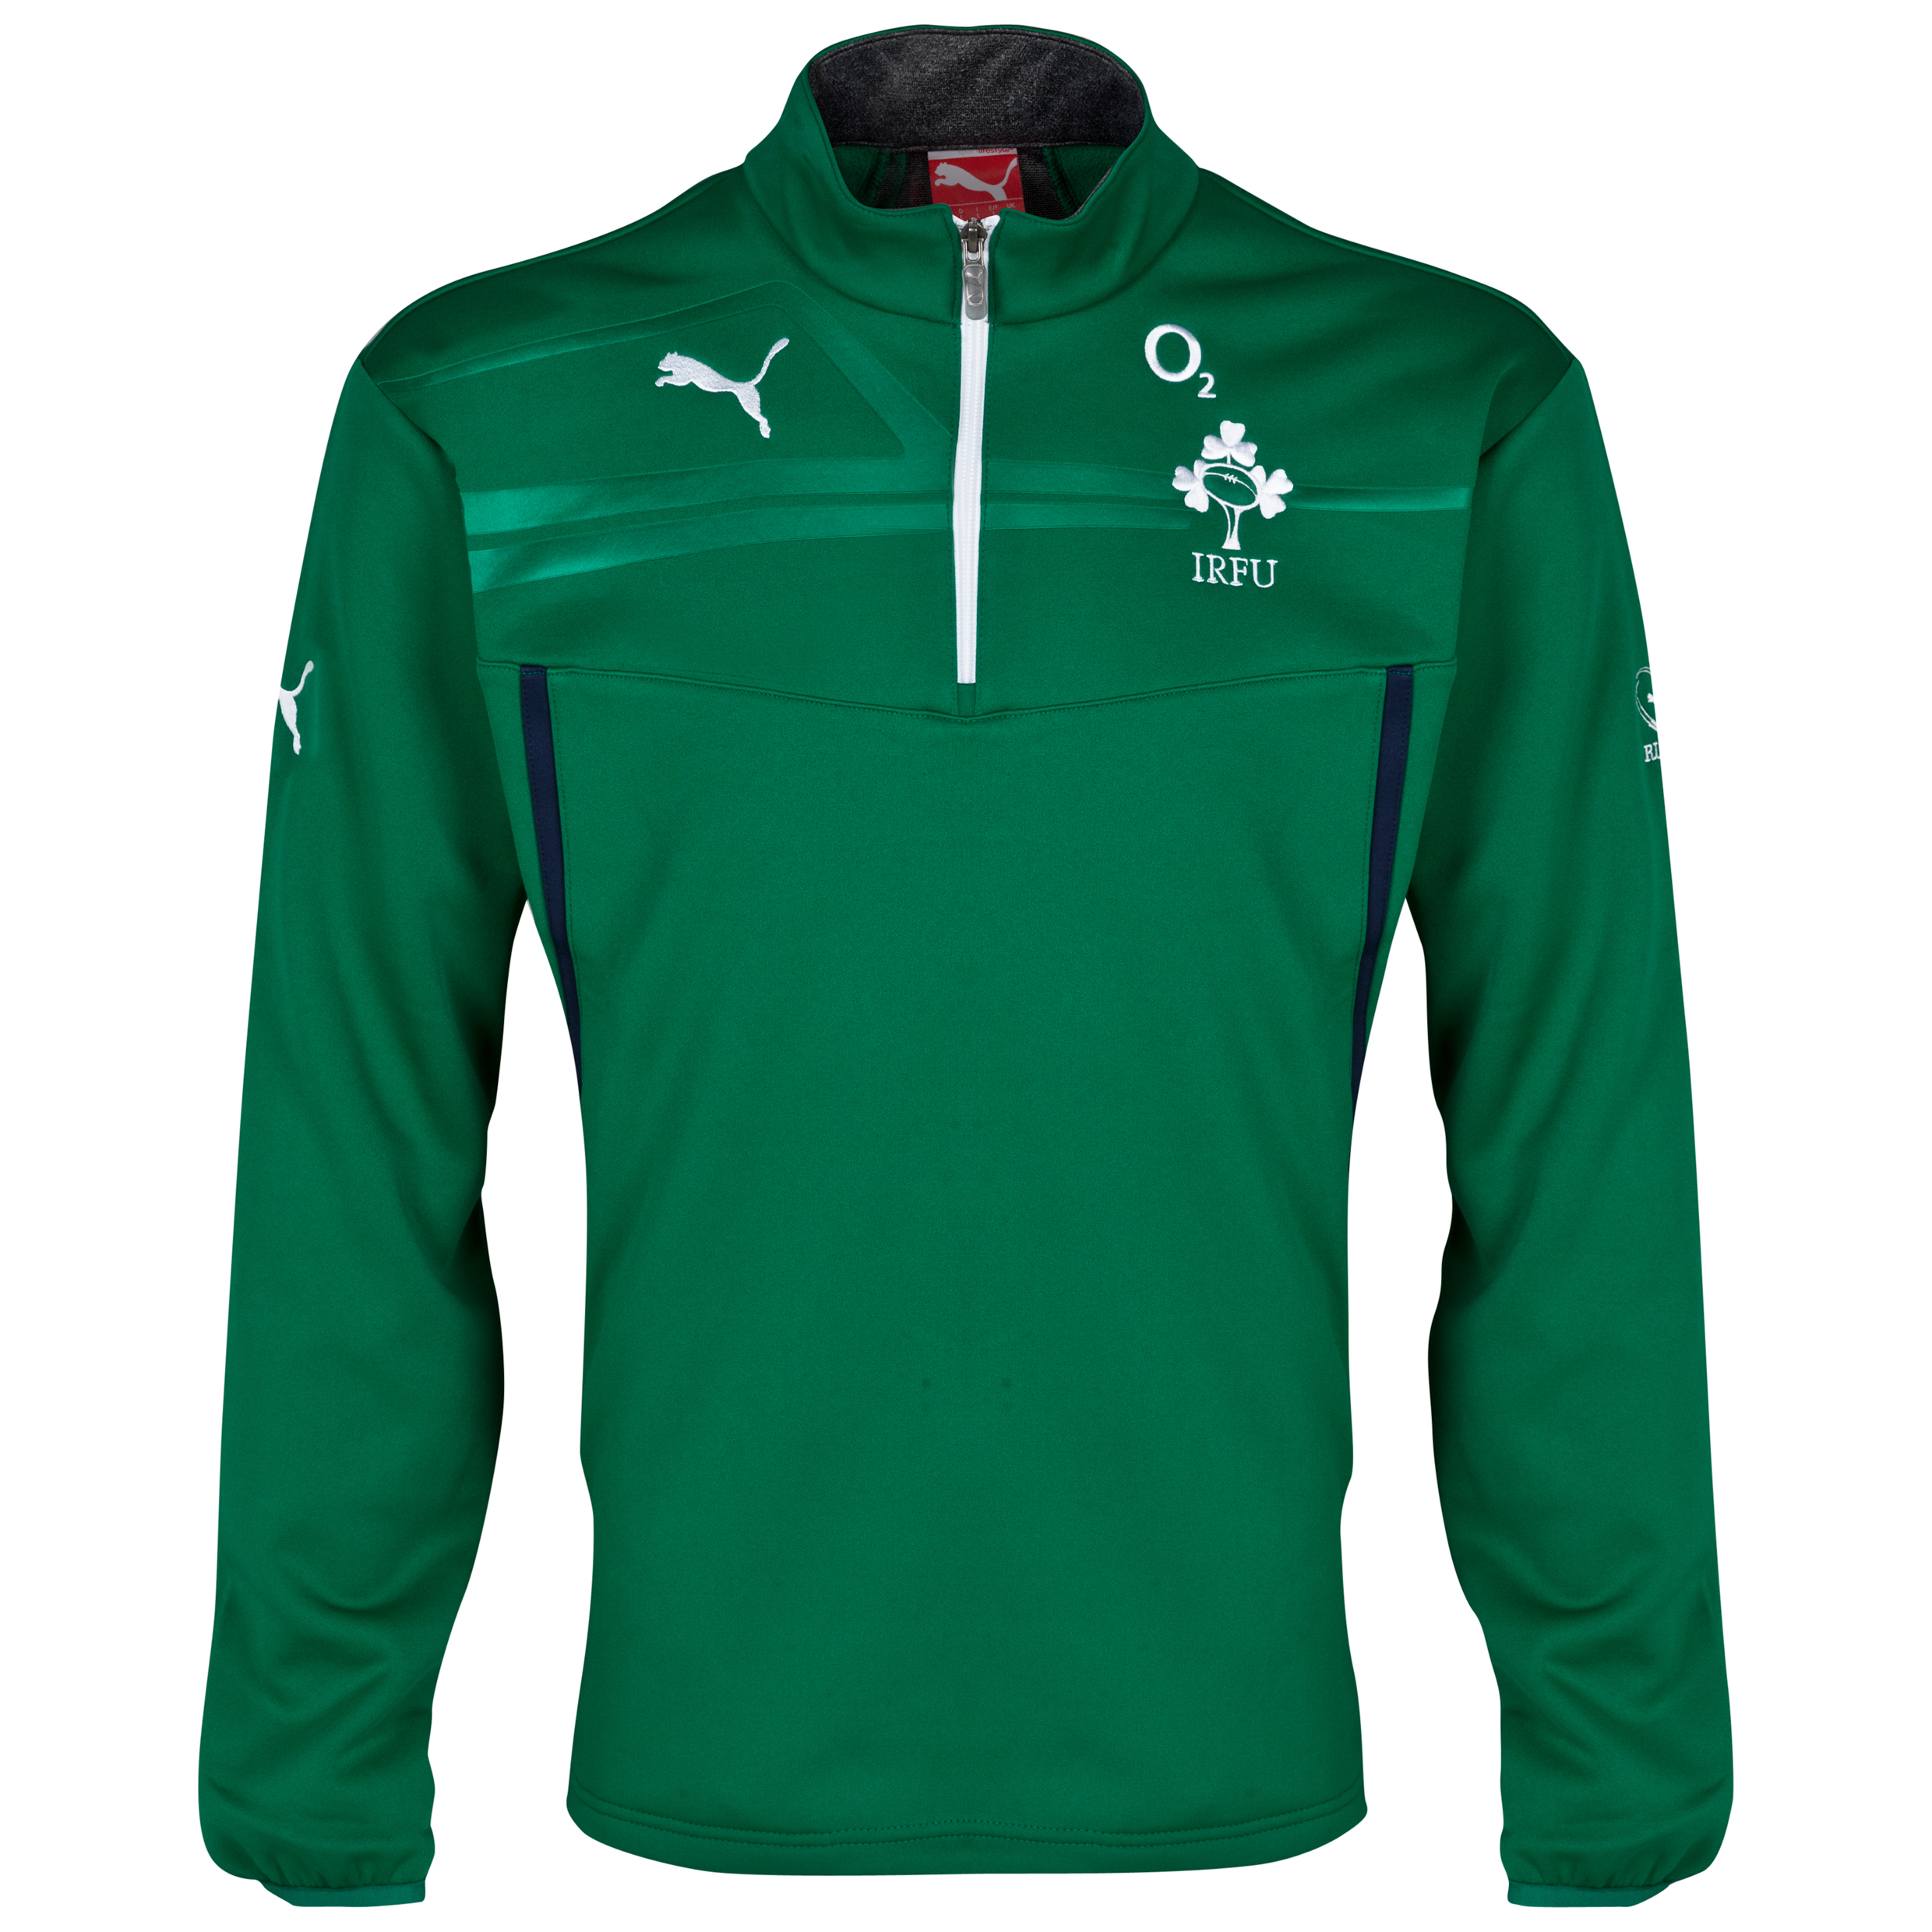 Ireland Fleece Training Top - Power Green/Peacoat Green